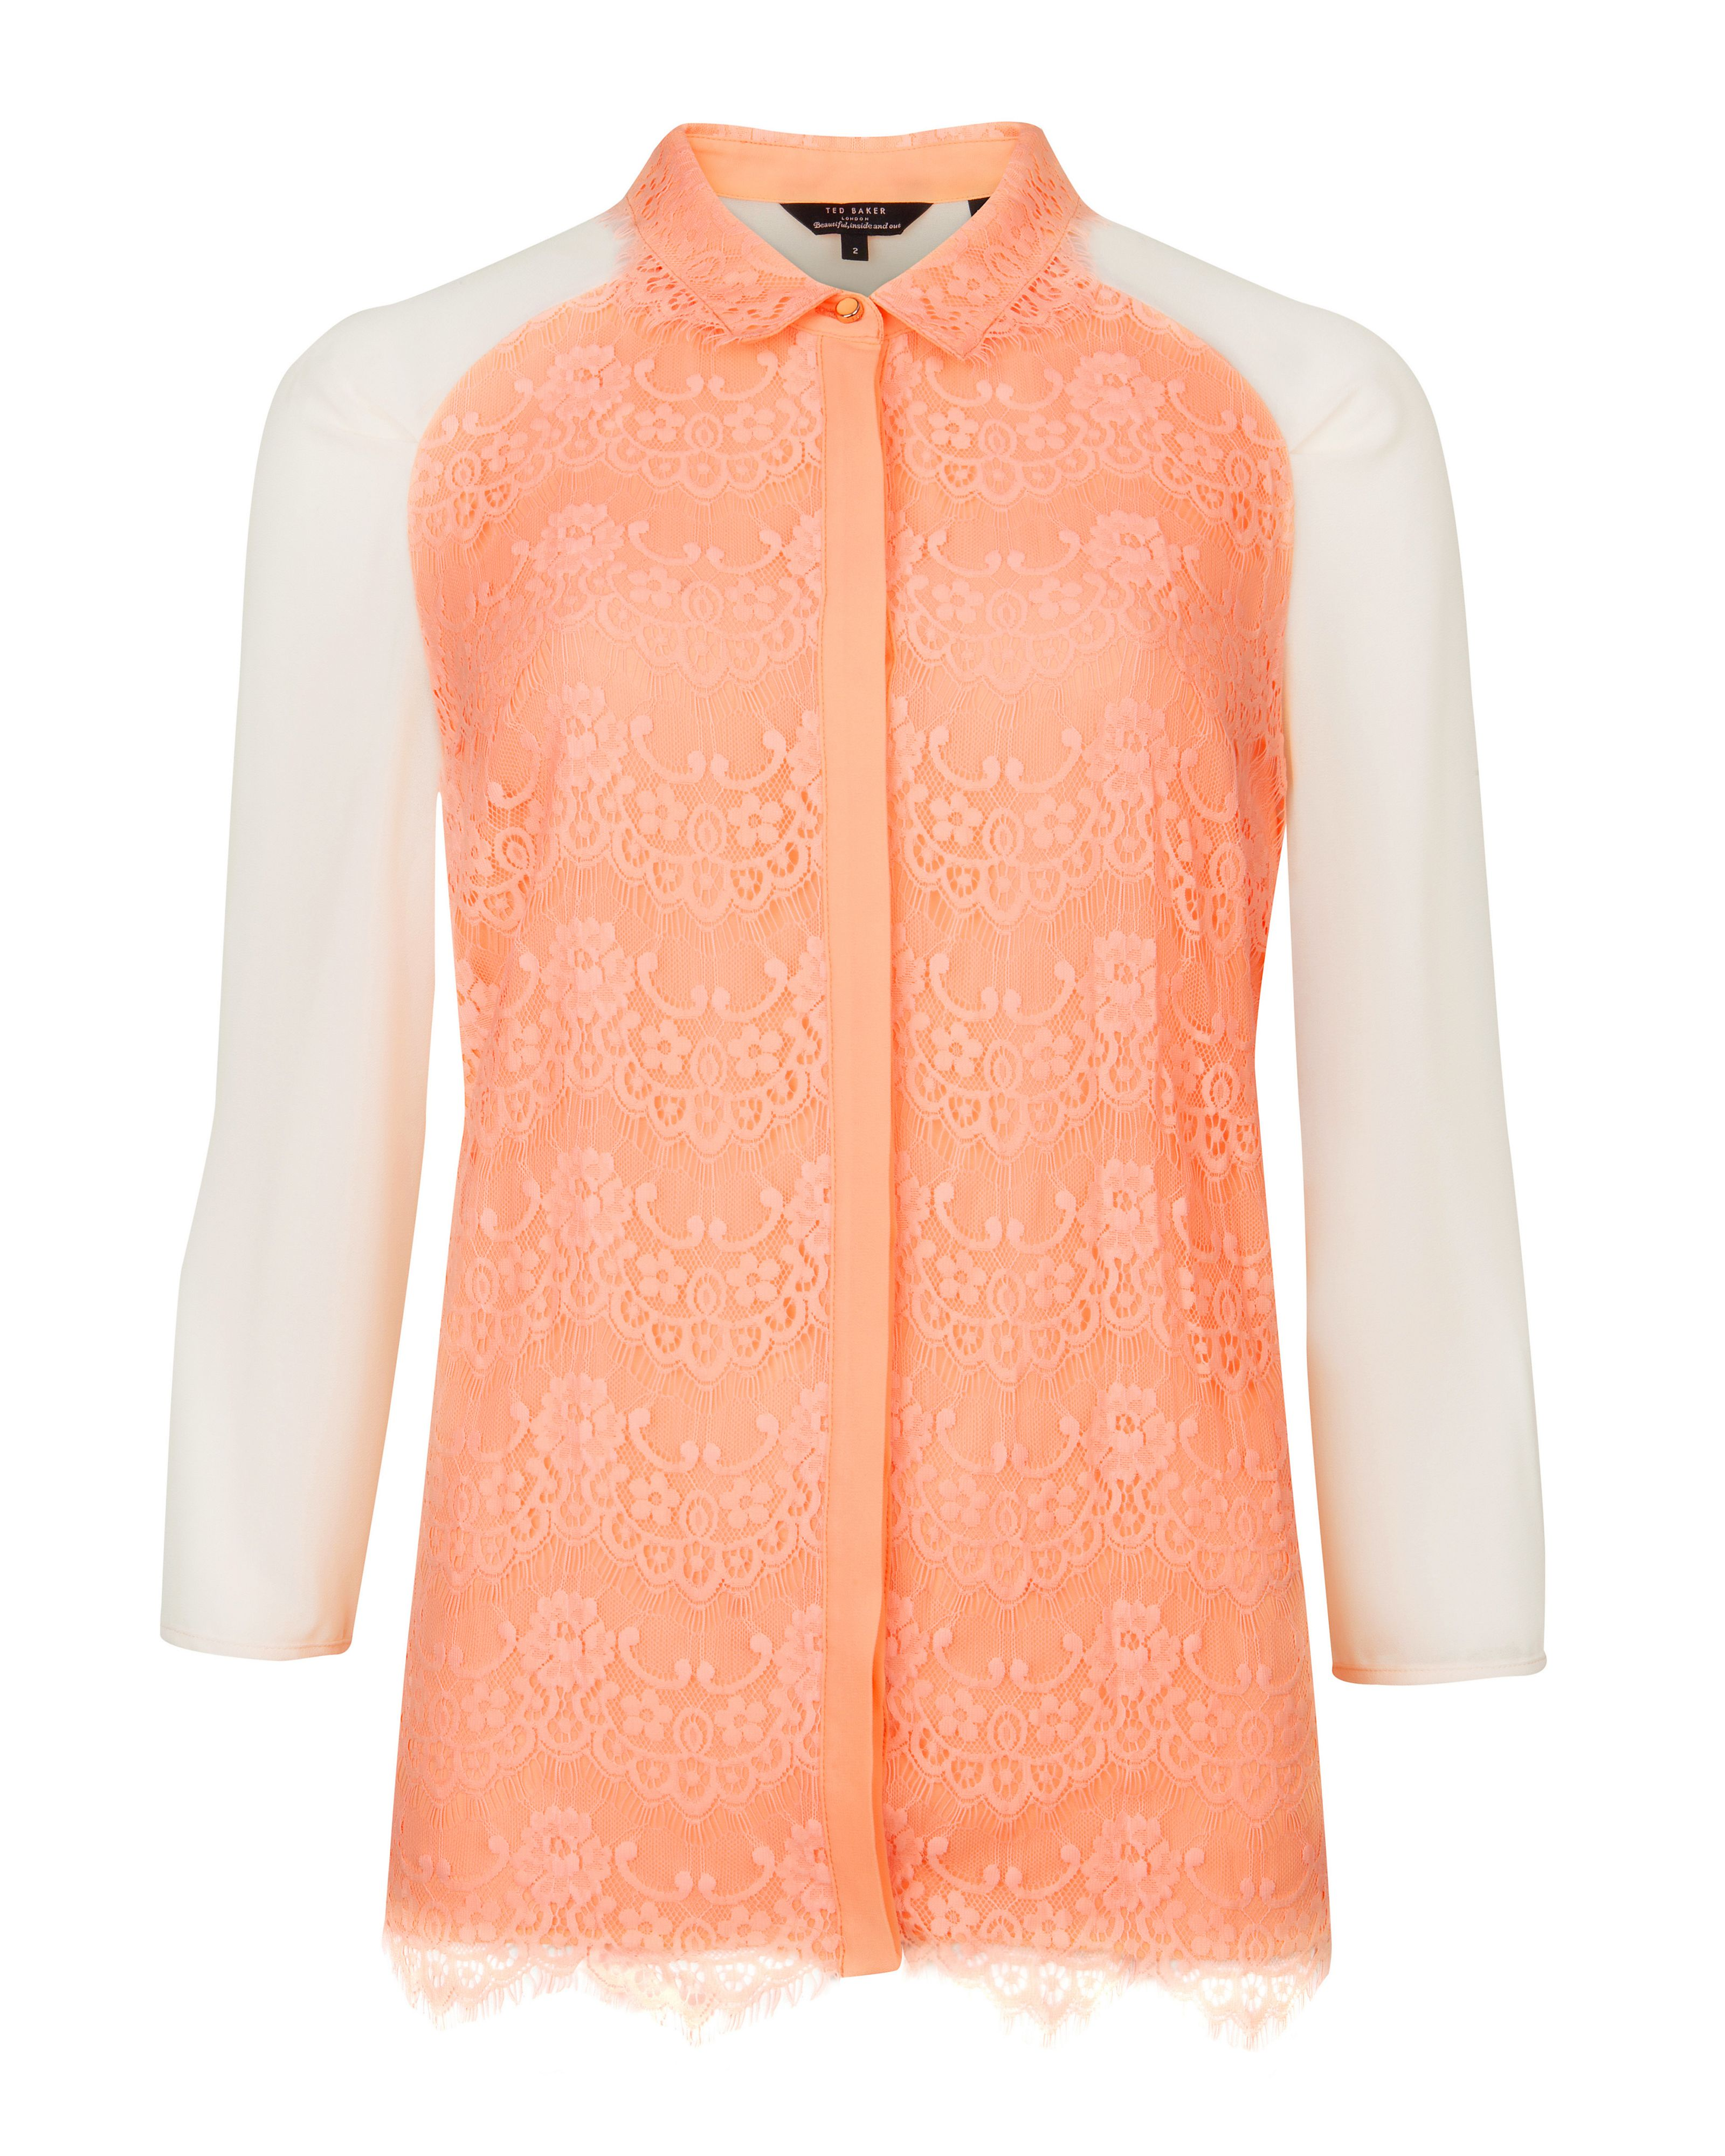 Abra lace detail shirt